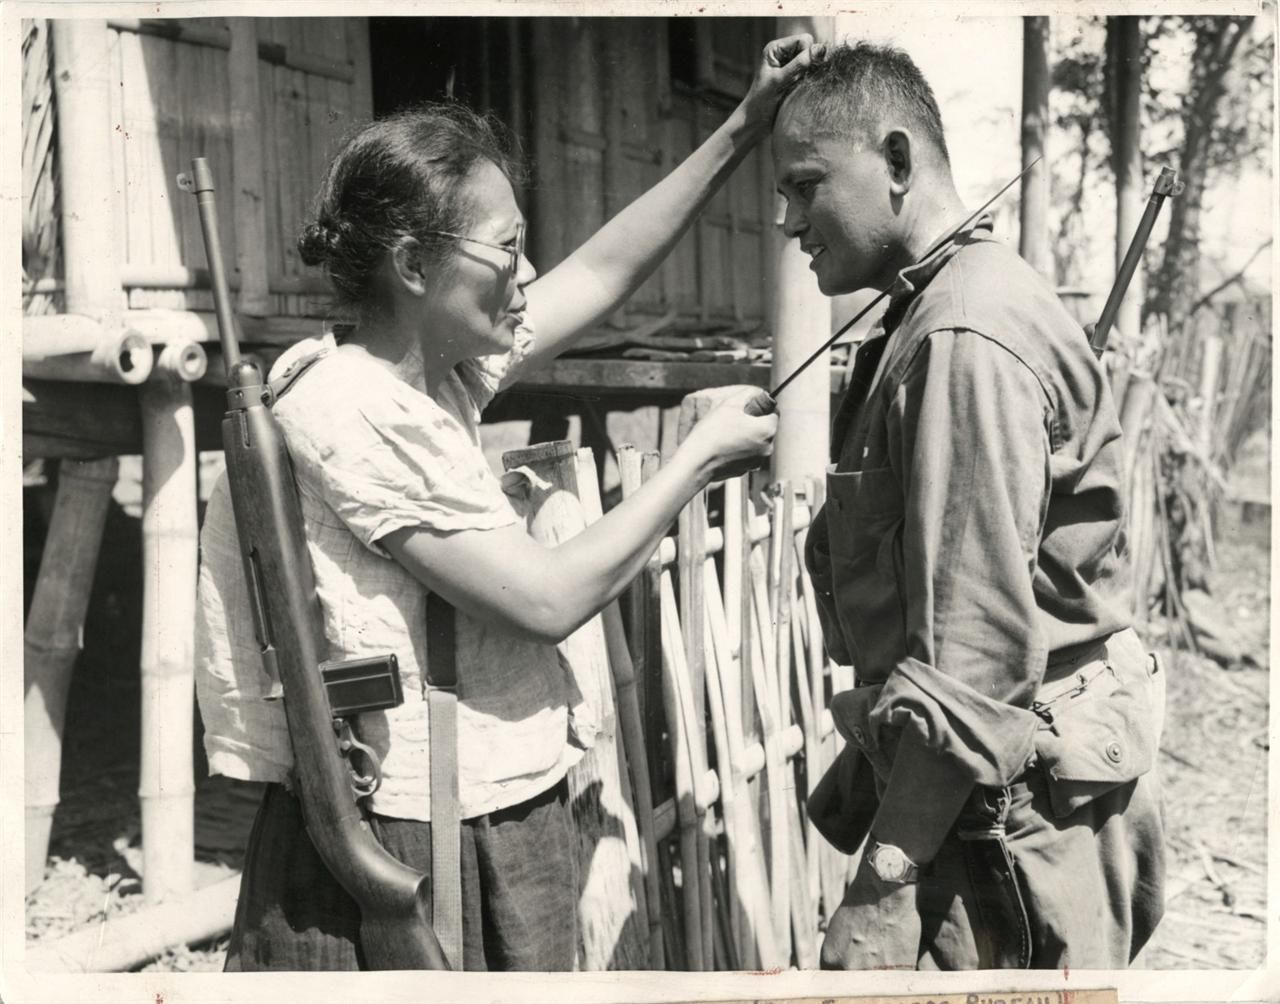 Stunning Image of Nieves Fernandez and Andrew Lupiga in 1944